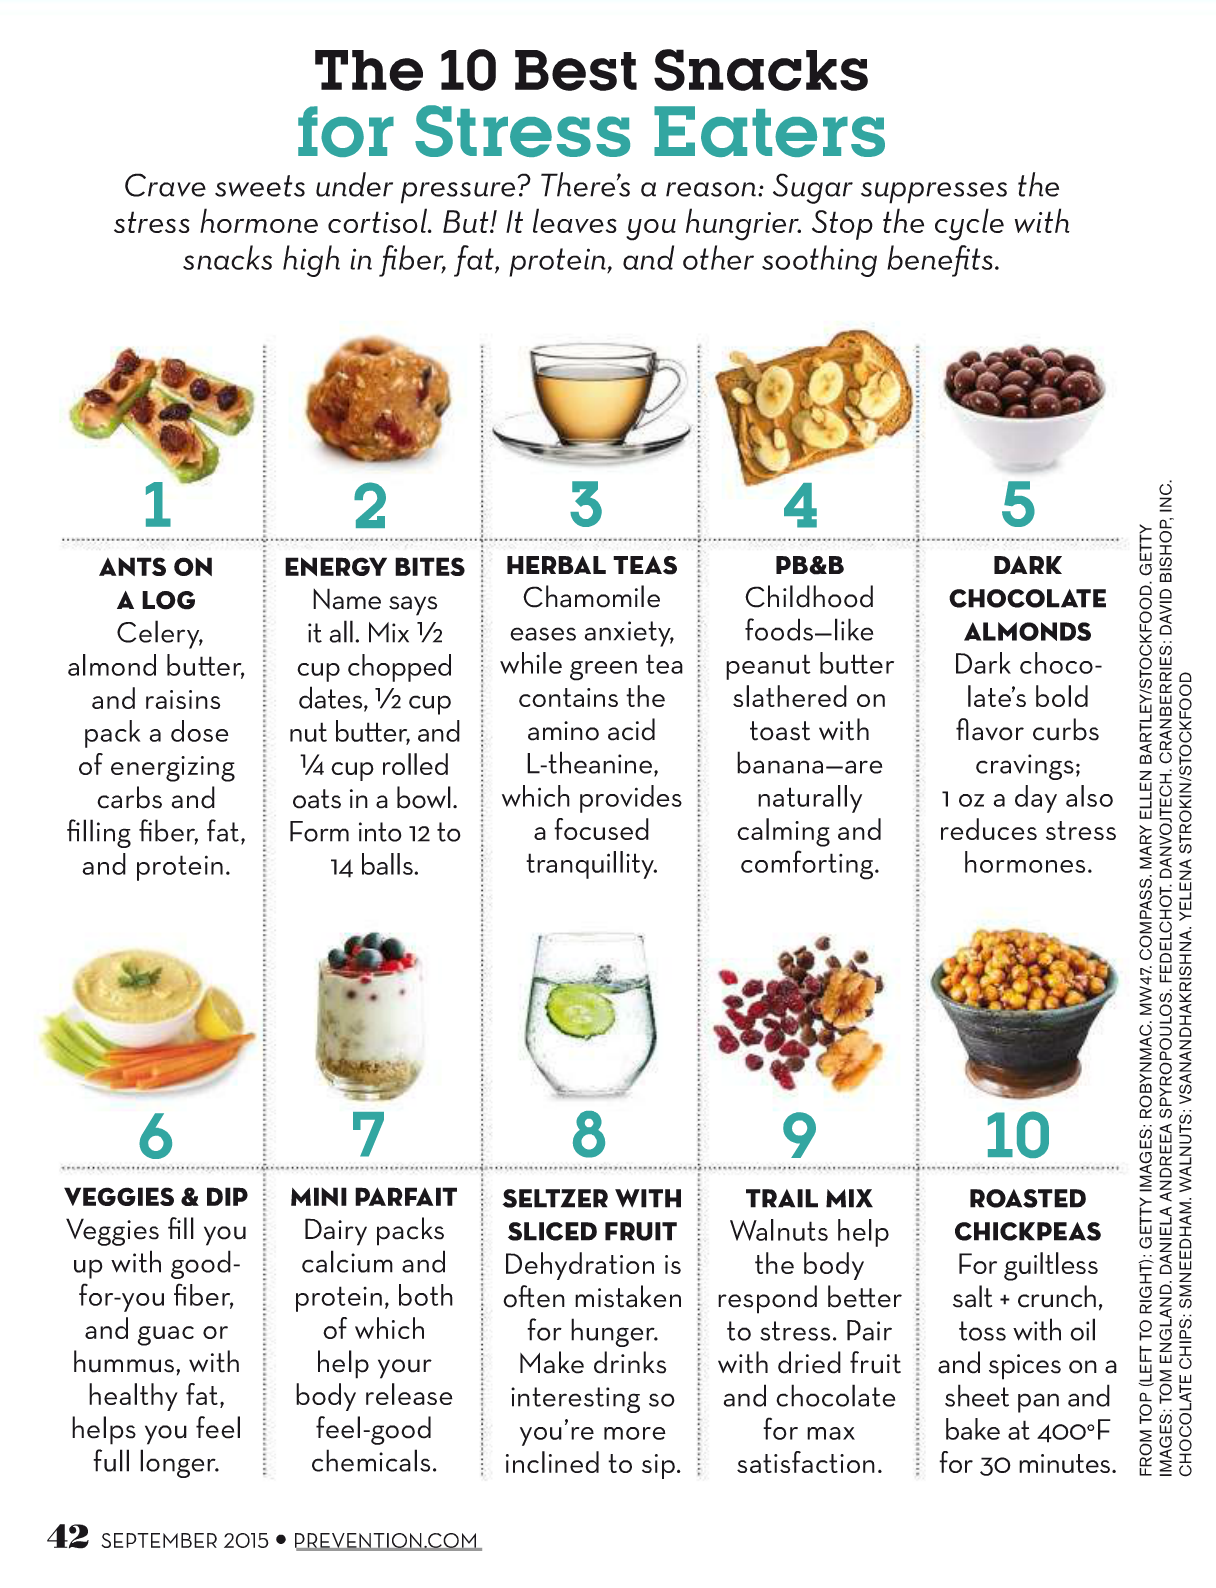 Pin by Sue Homemaker on Recipes: Snacks | Healthy study ...